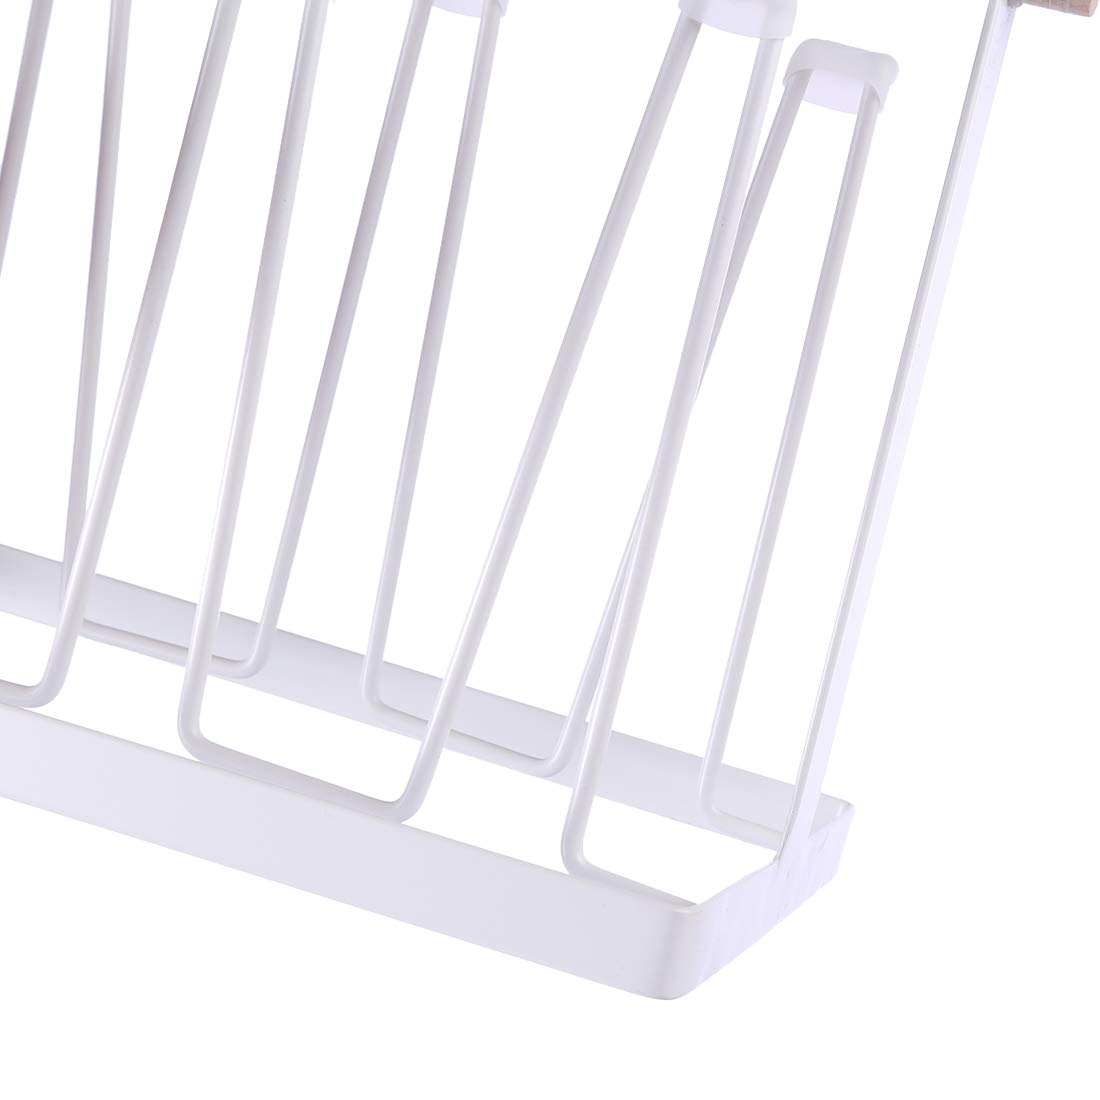 Wine Glass and Accessories Baby Bottles Cups FutureShapers Mug Holder Organizer Glass Dryer Drying Rack for Bottles